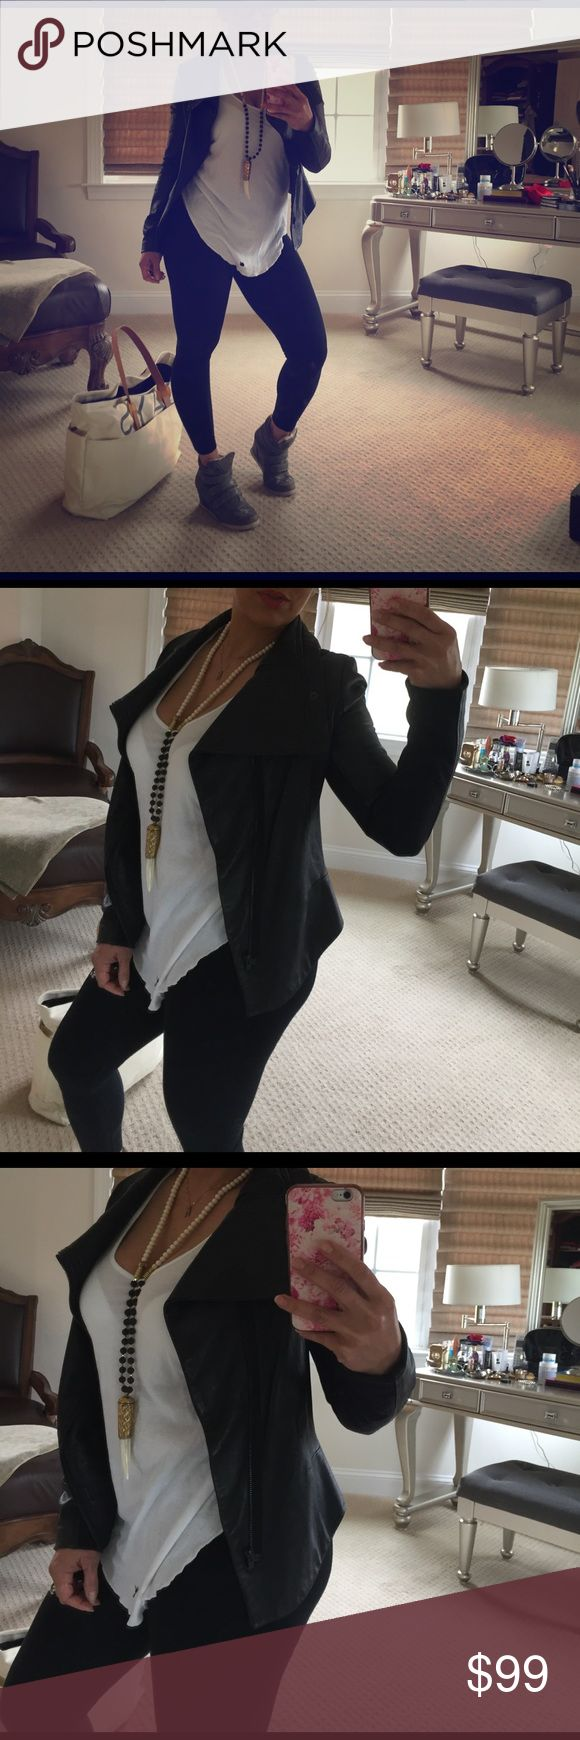 DALLIN CHASE CROP LEATHER JACKET S Genuine leather, used but in great clean condition. Asymmetrical front zipper, cropped in the back.  This was my go to airport travel outfit with my leggings and wedge sneakers. dallin chase Jackets & Coats